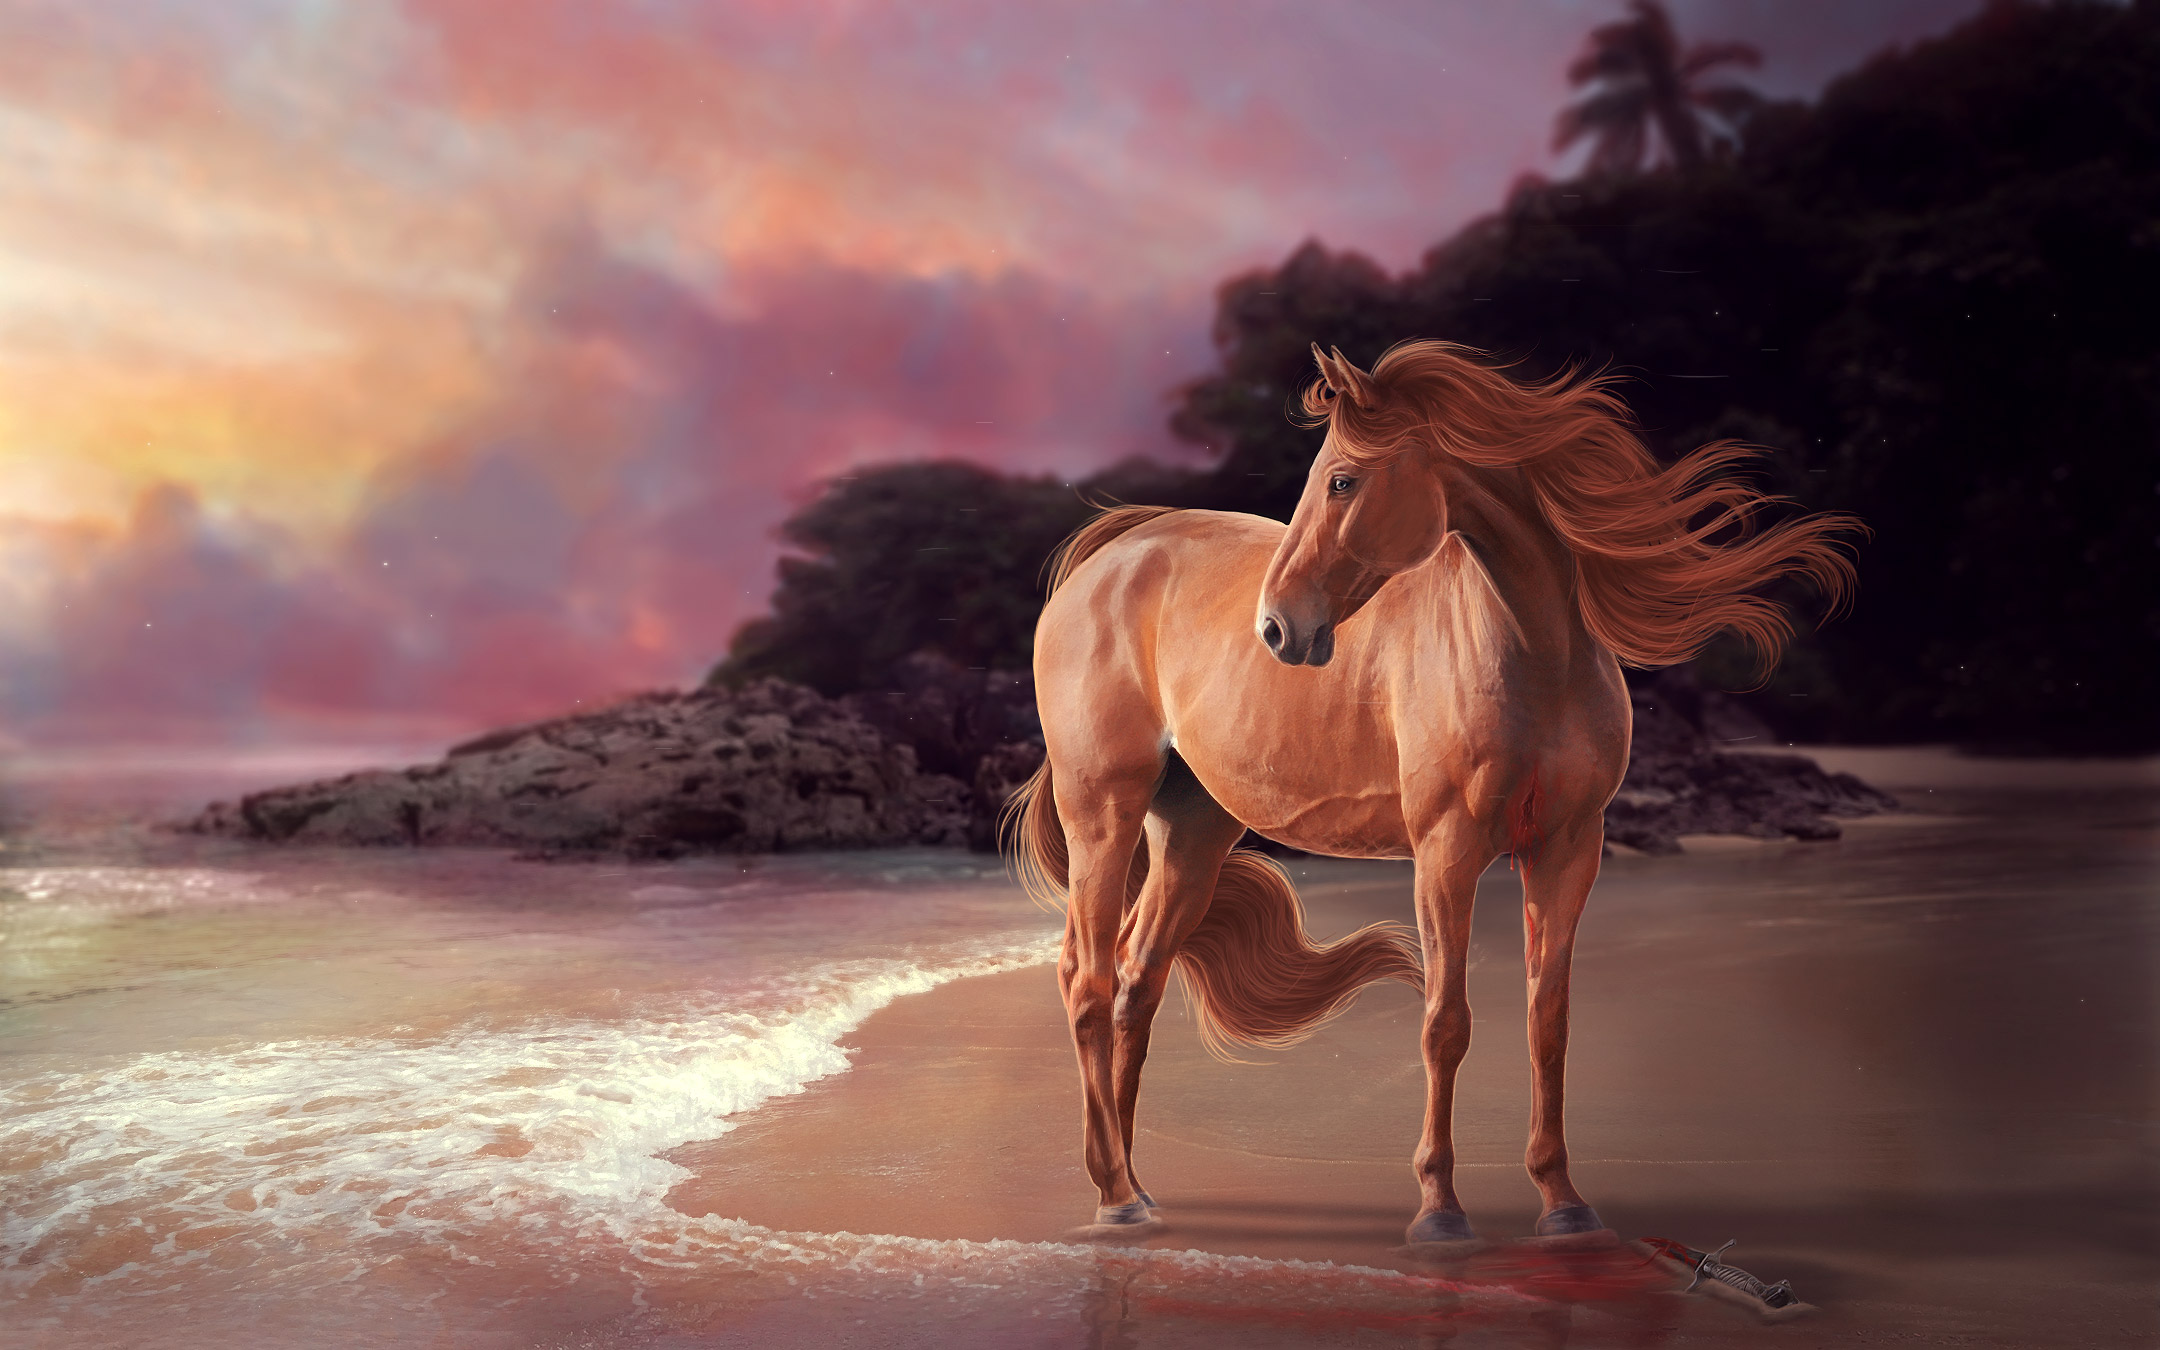 Horse on beach artwork hd animals 4k wallpapers images for Window horses